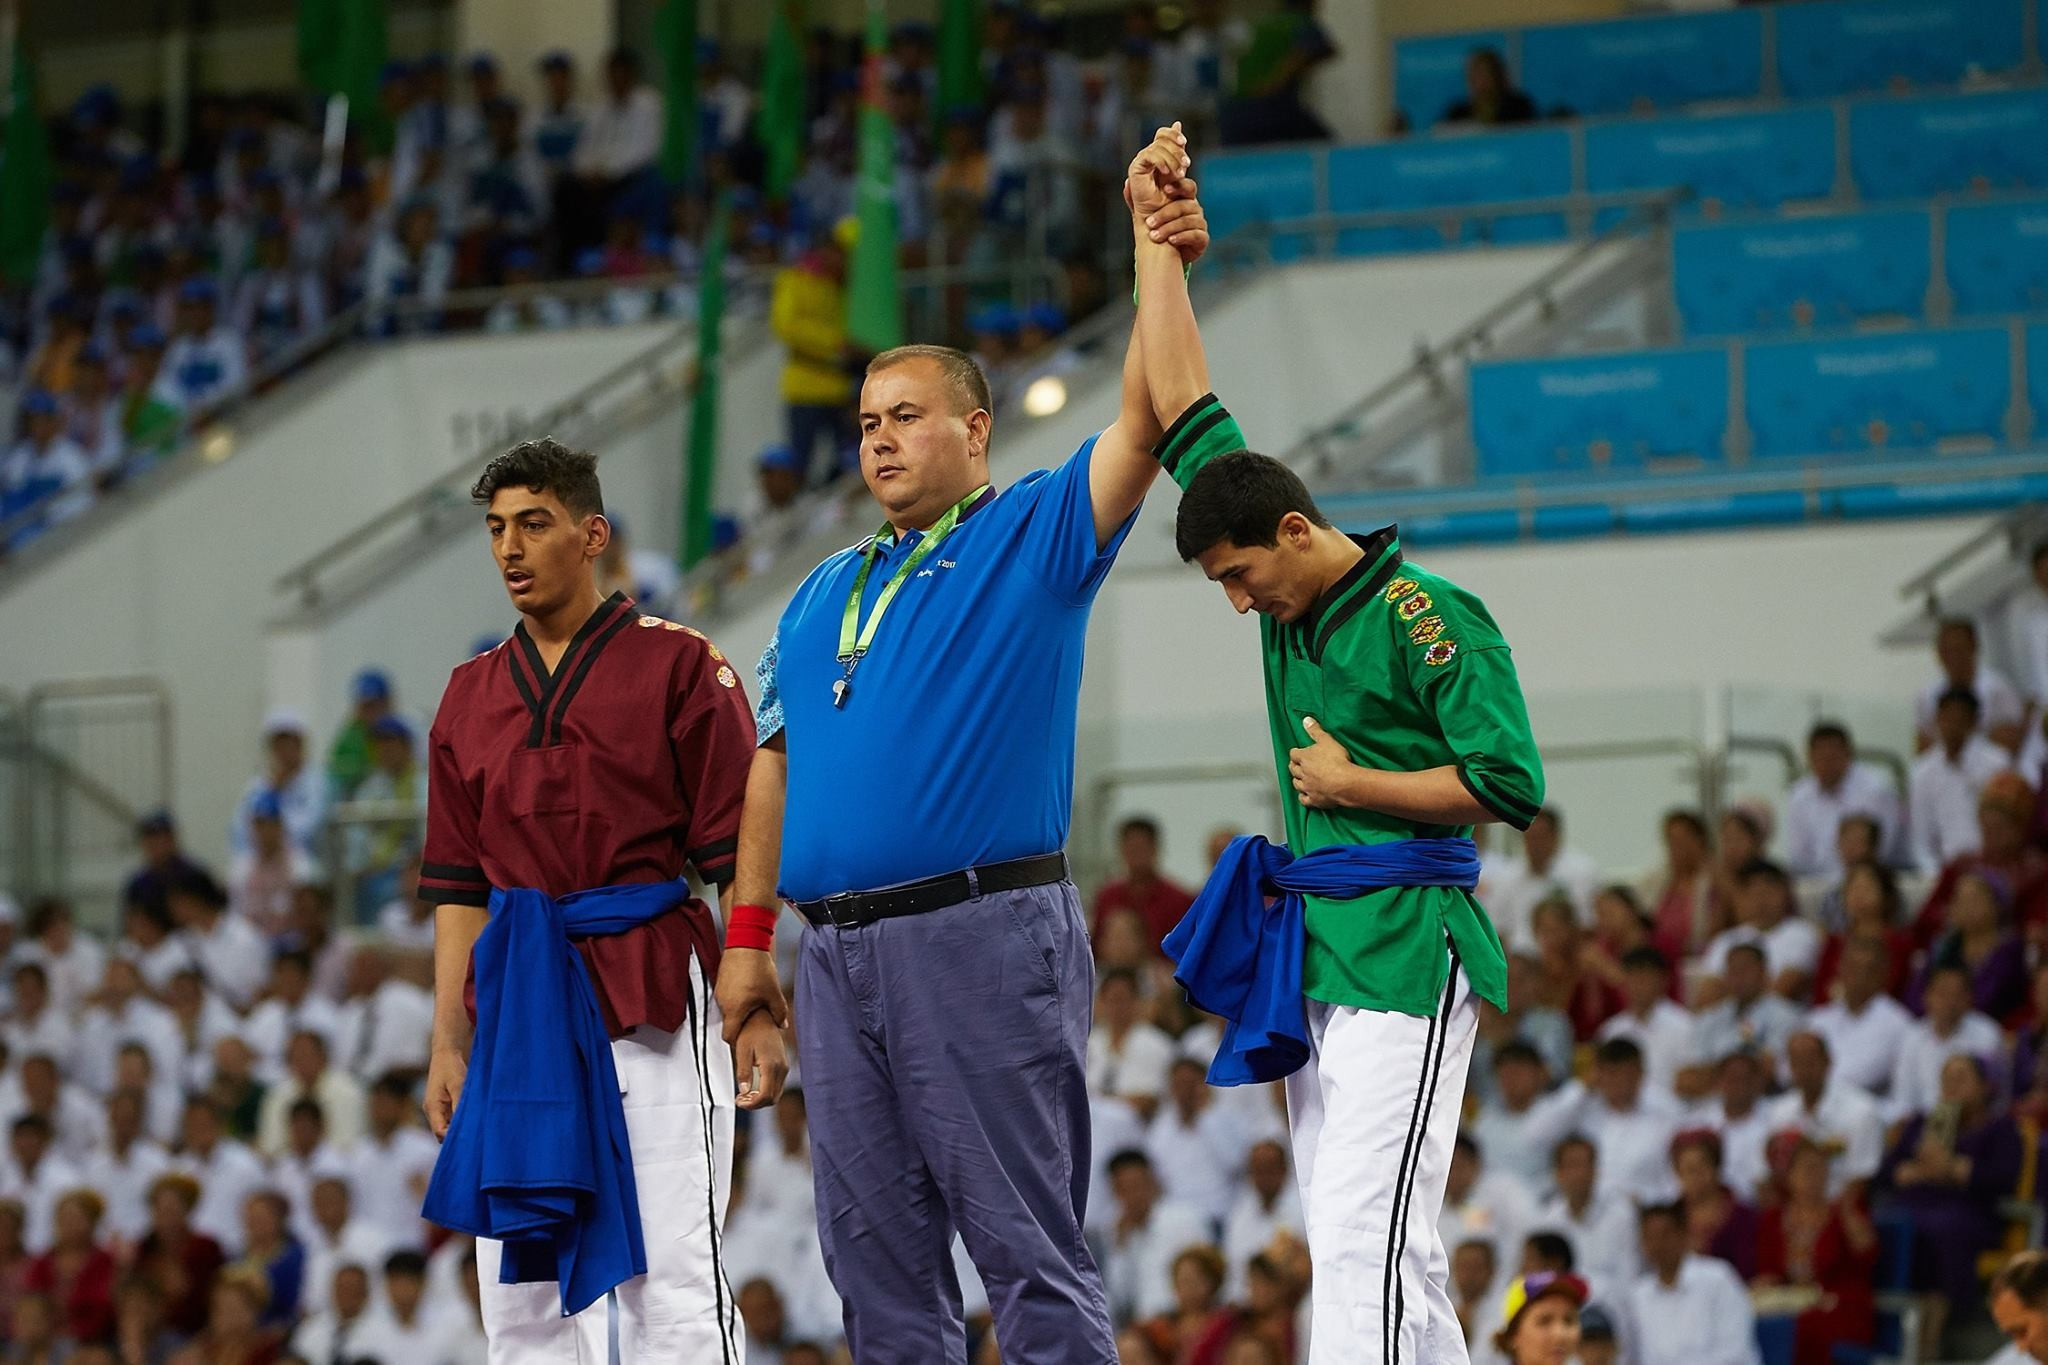 Hosts claim 10 gold medals on first day of Ashgabat 2017 traditional wrestling action